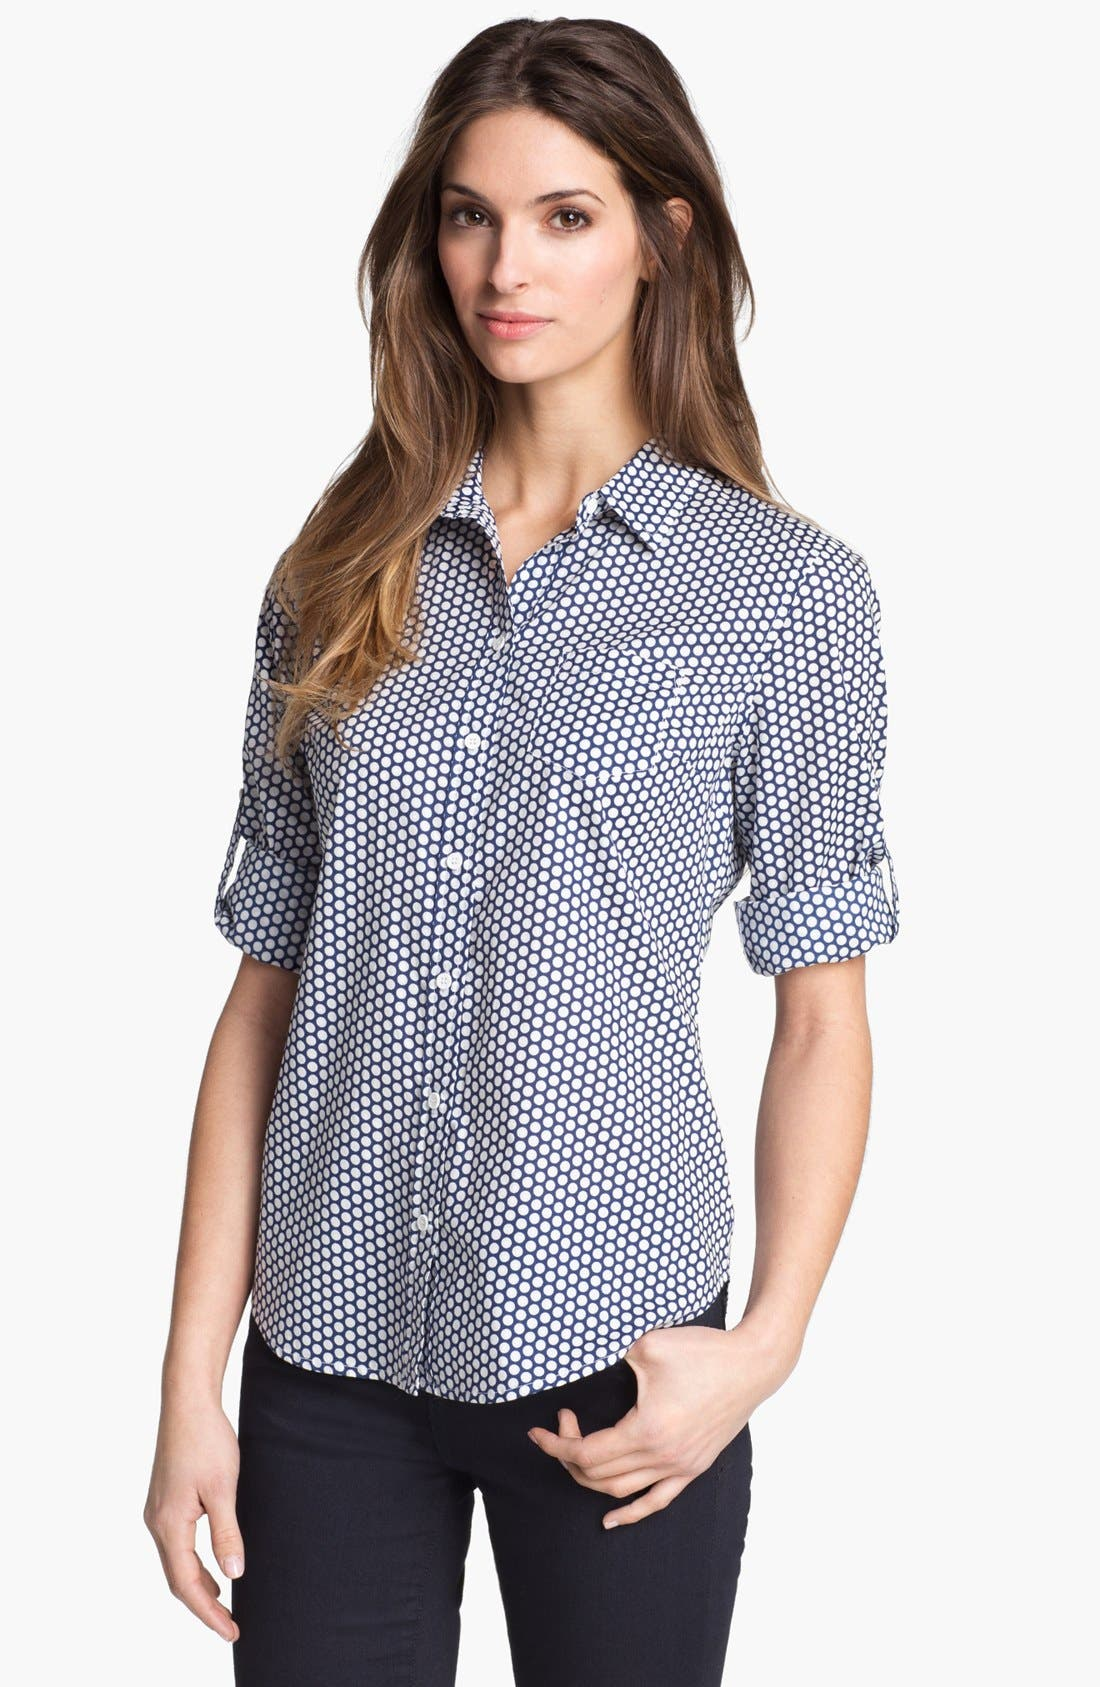 Alternate Image 1 Selected - Sandra Ingrish Roll Sleeve Polka Dot Shirt (Petite)